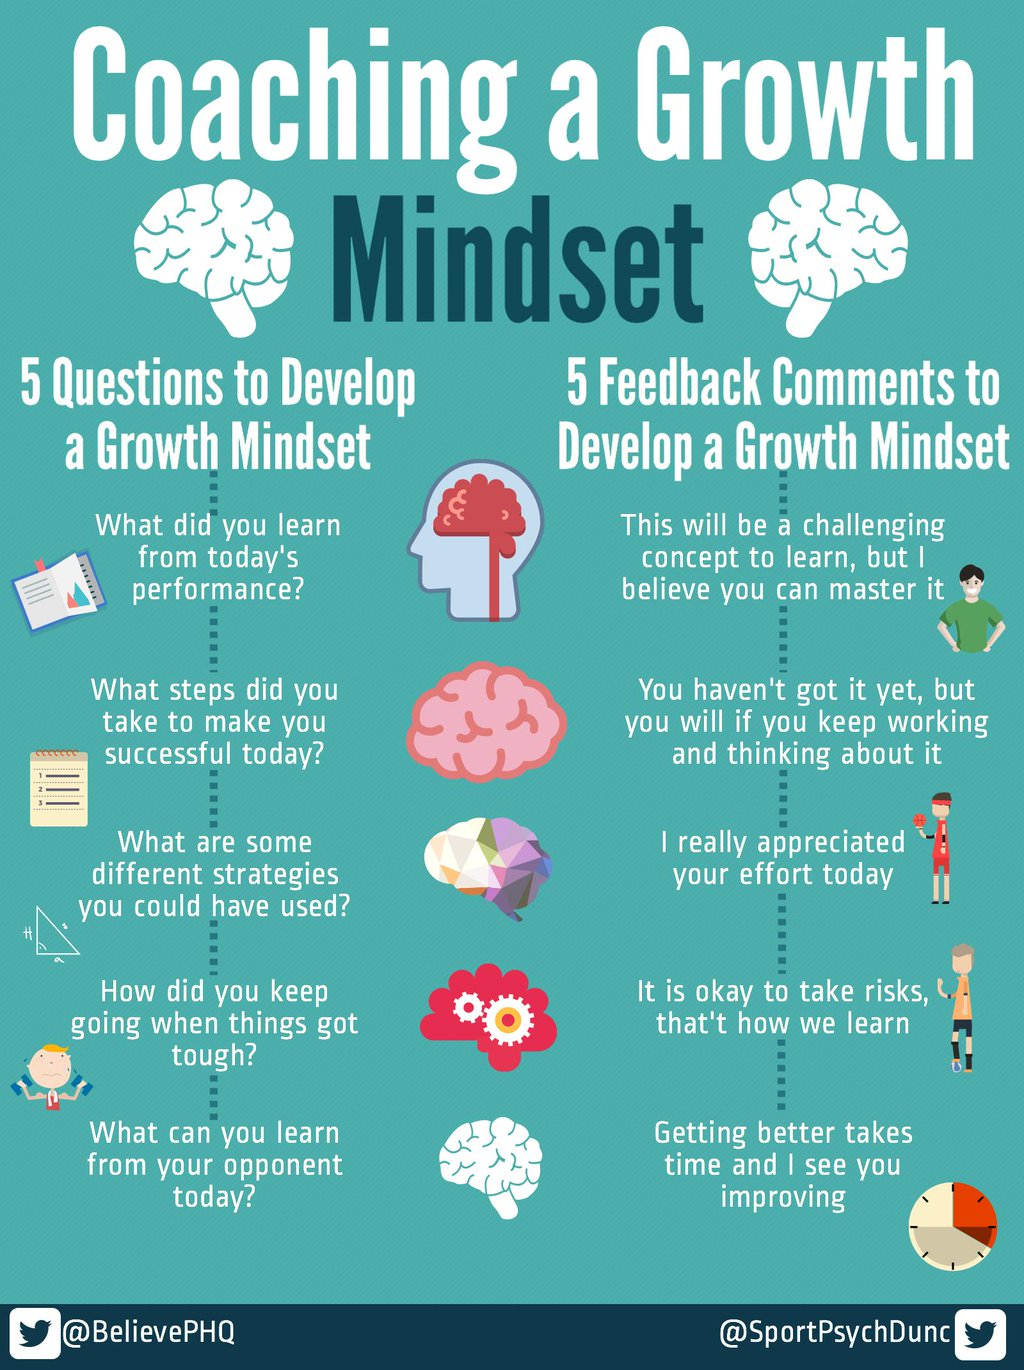 Coaching a growth mindset